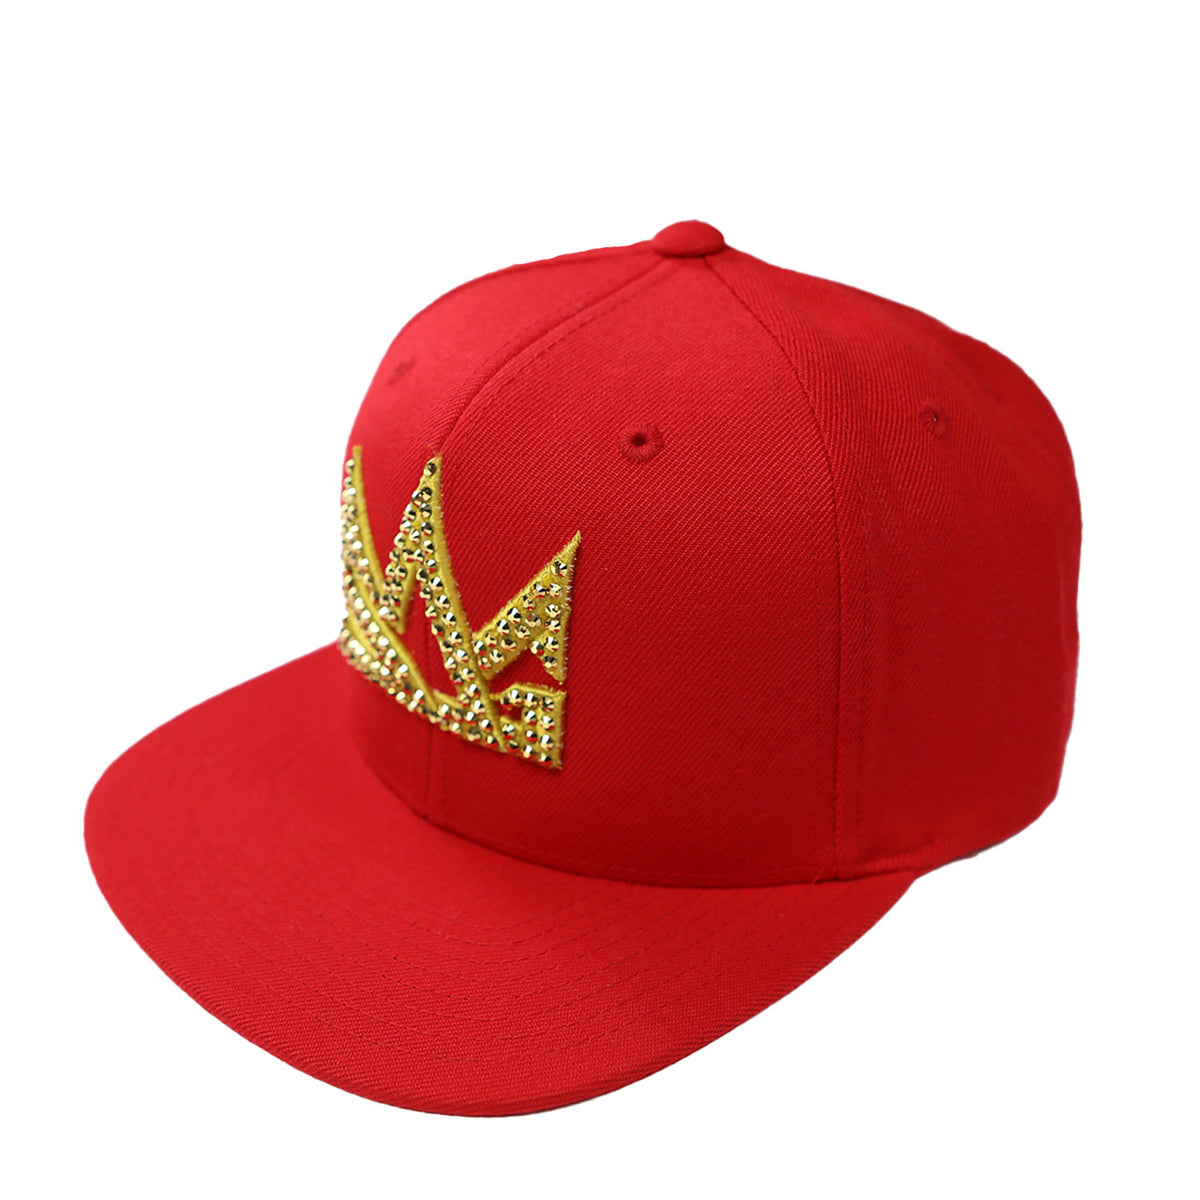 Legacy SOG Snapback - Red with Crystals